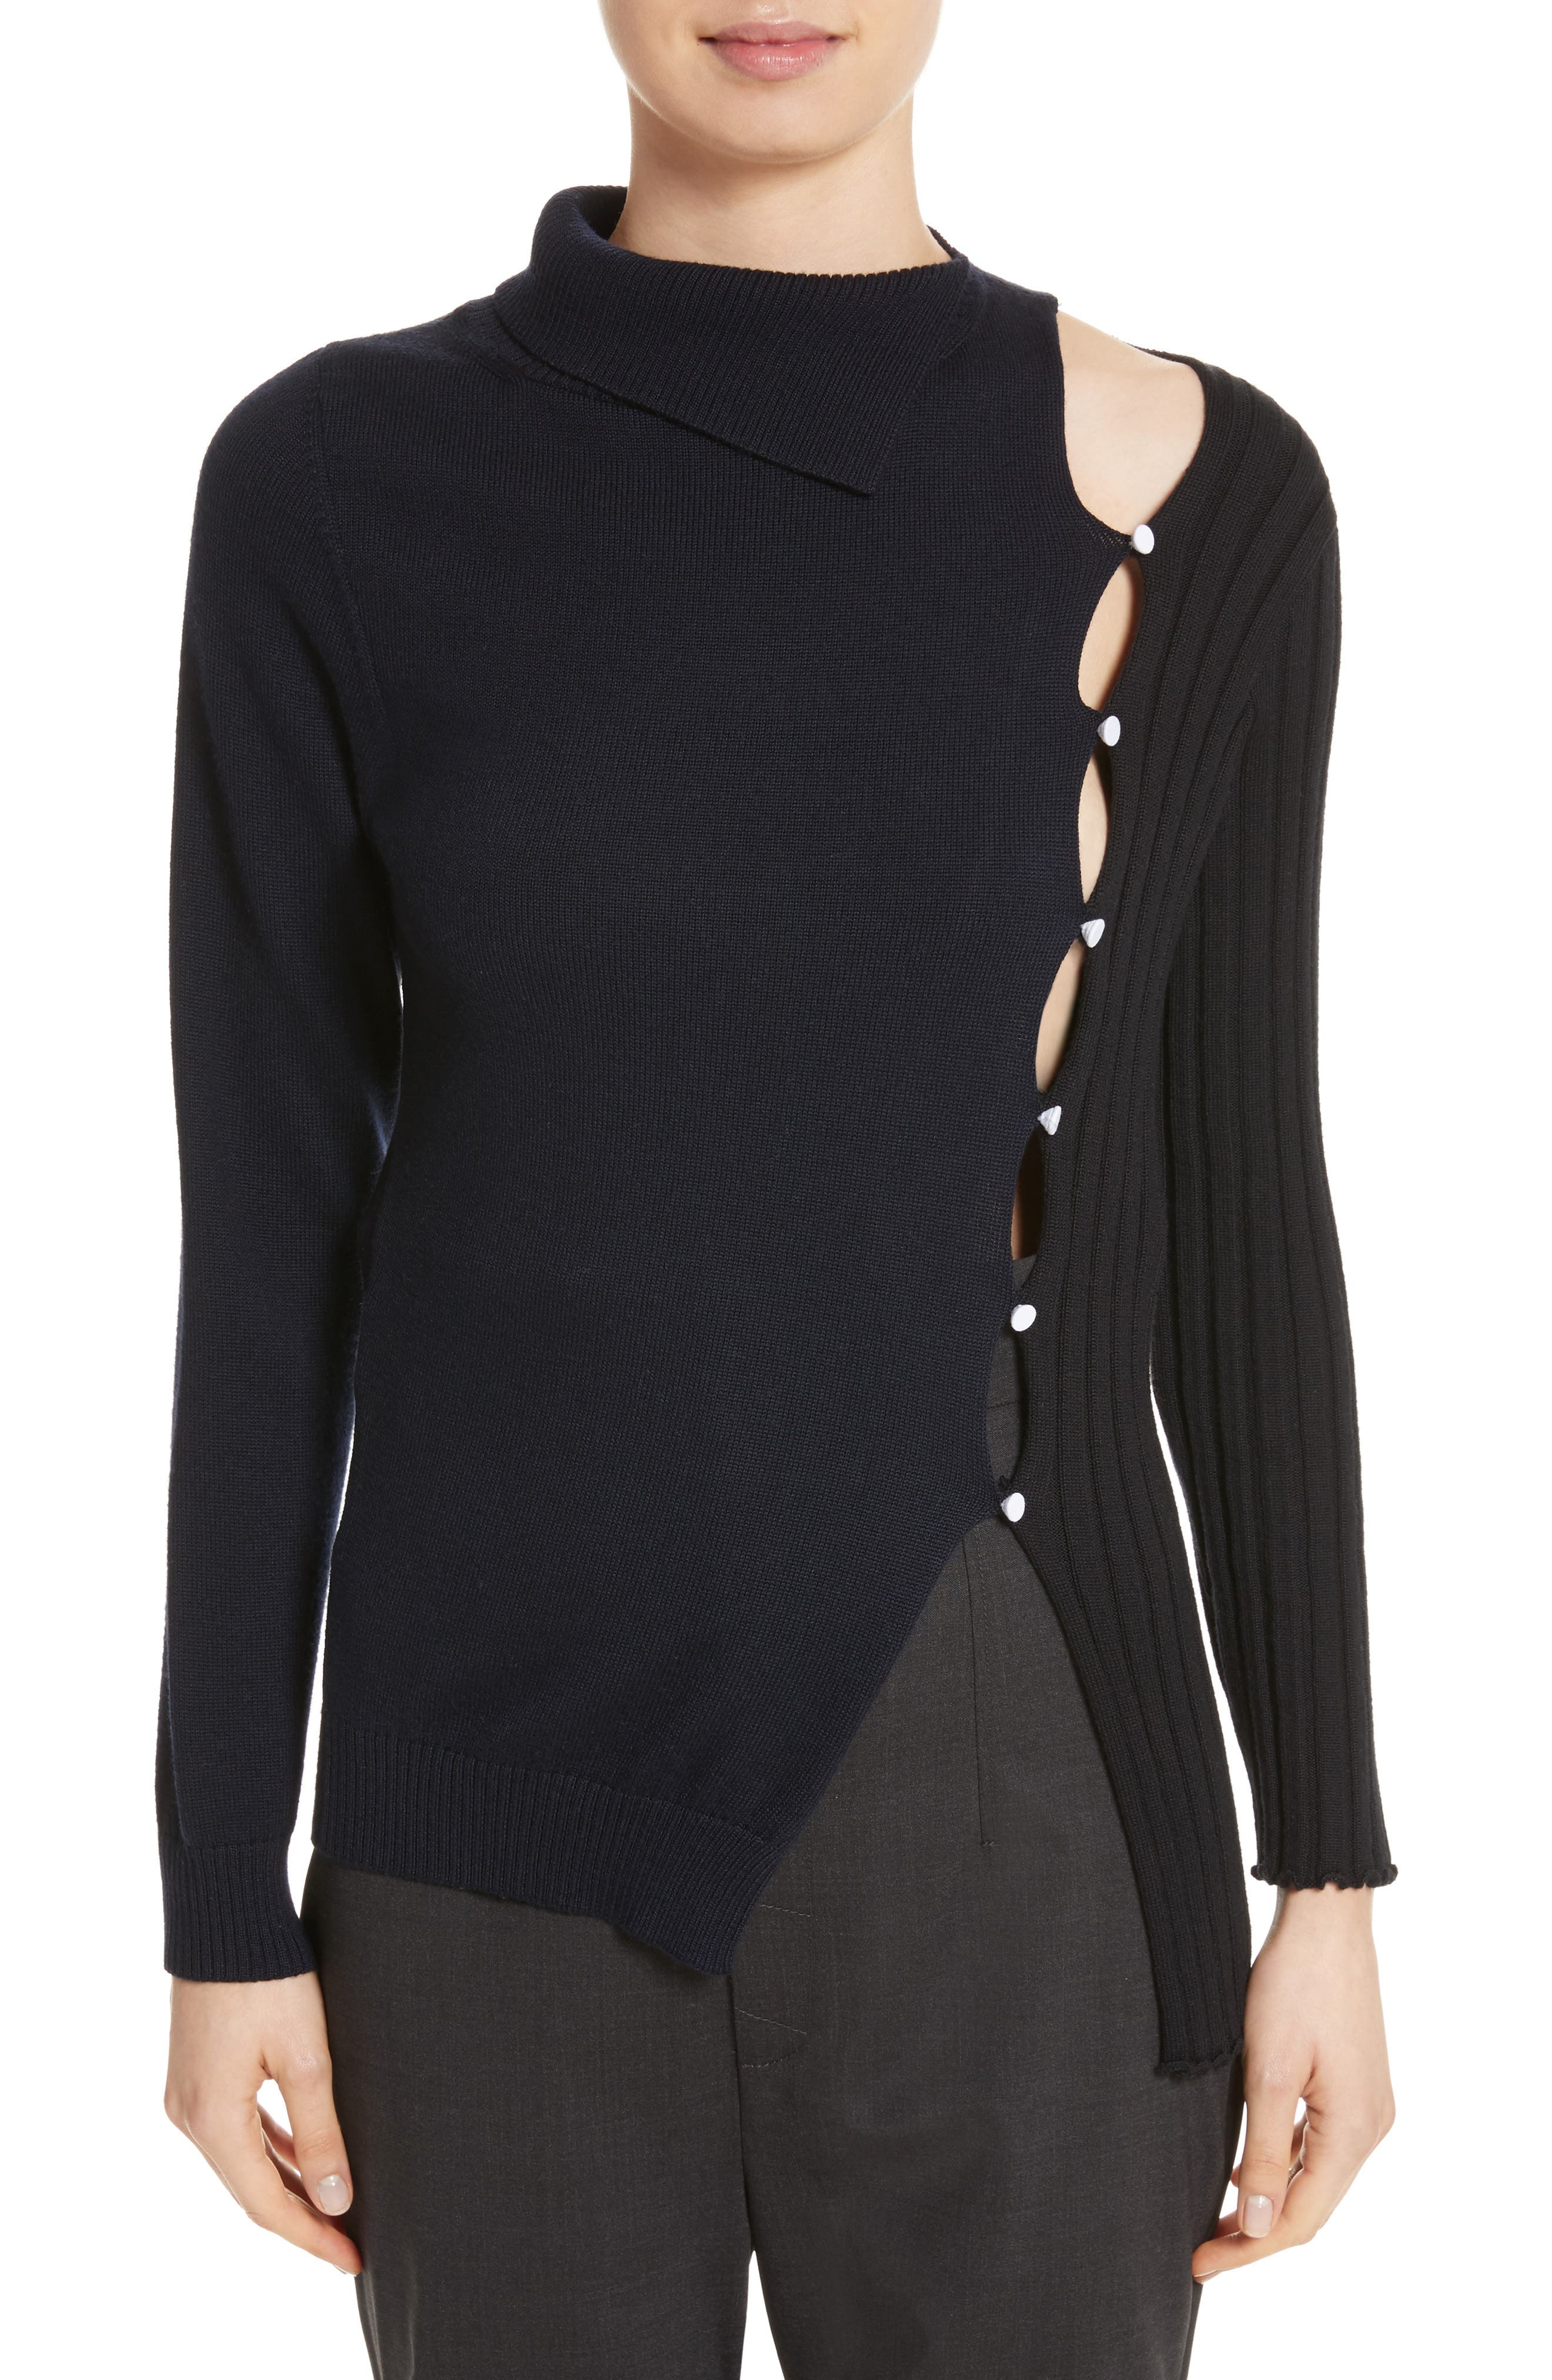 Jacquemus Asymmetrical Button Front Turtleneck Sweater